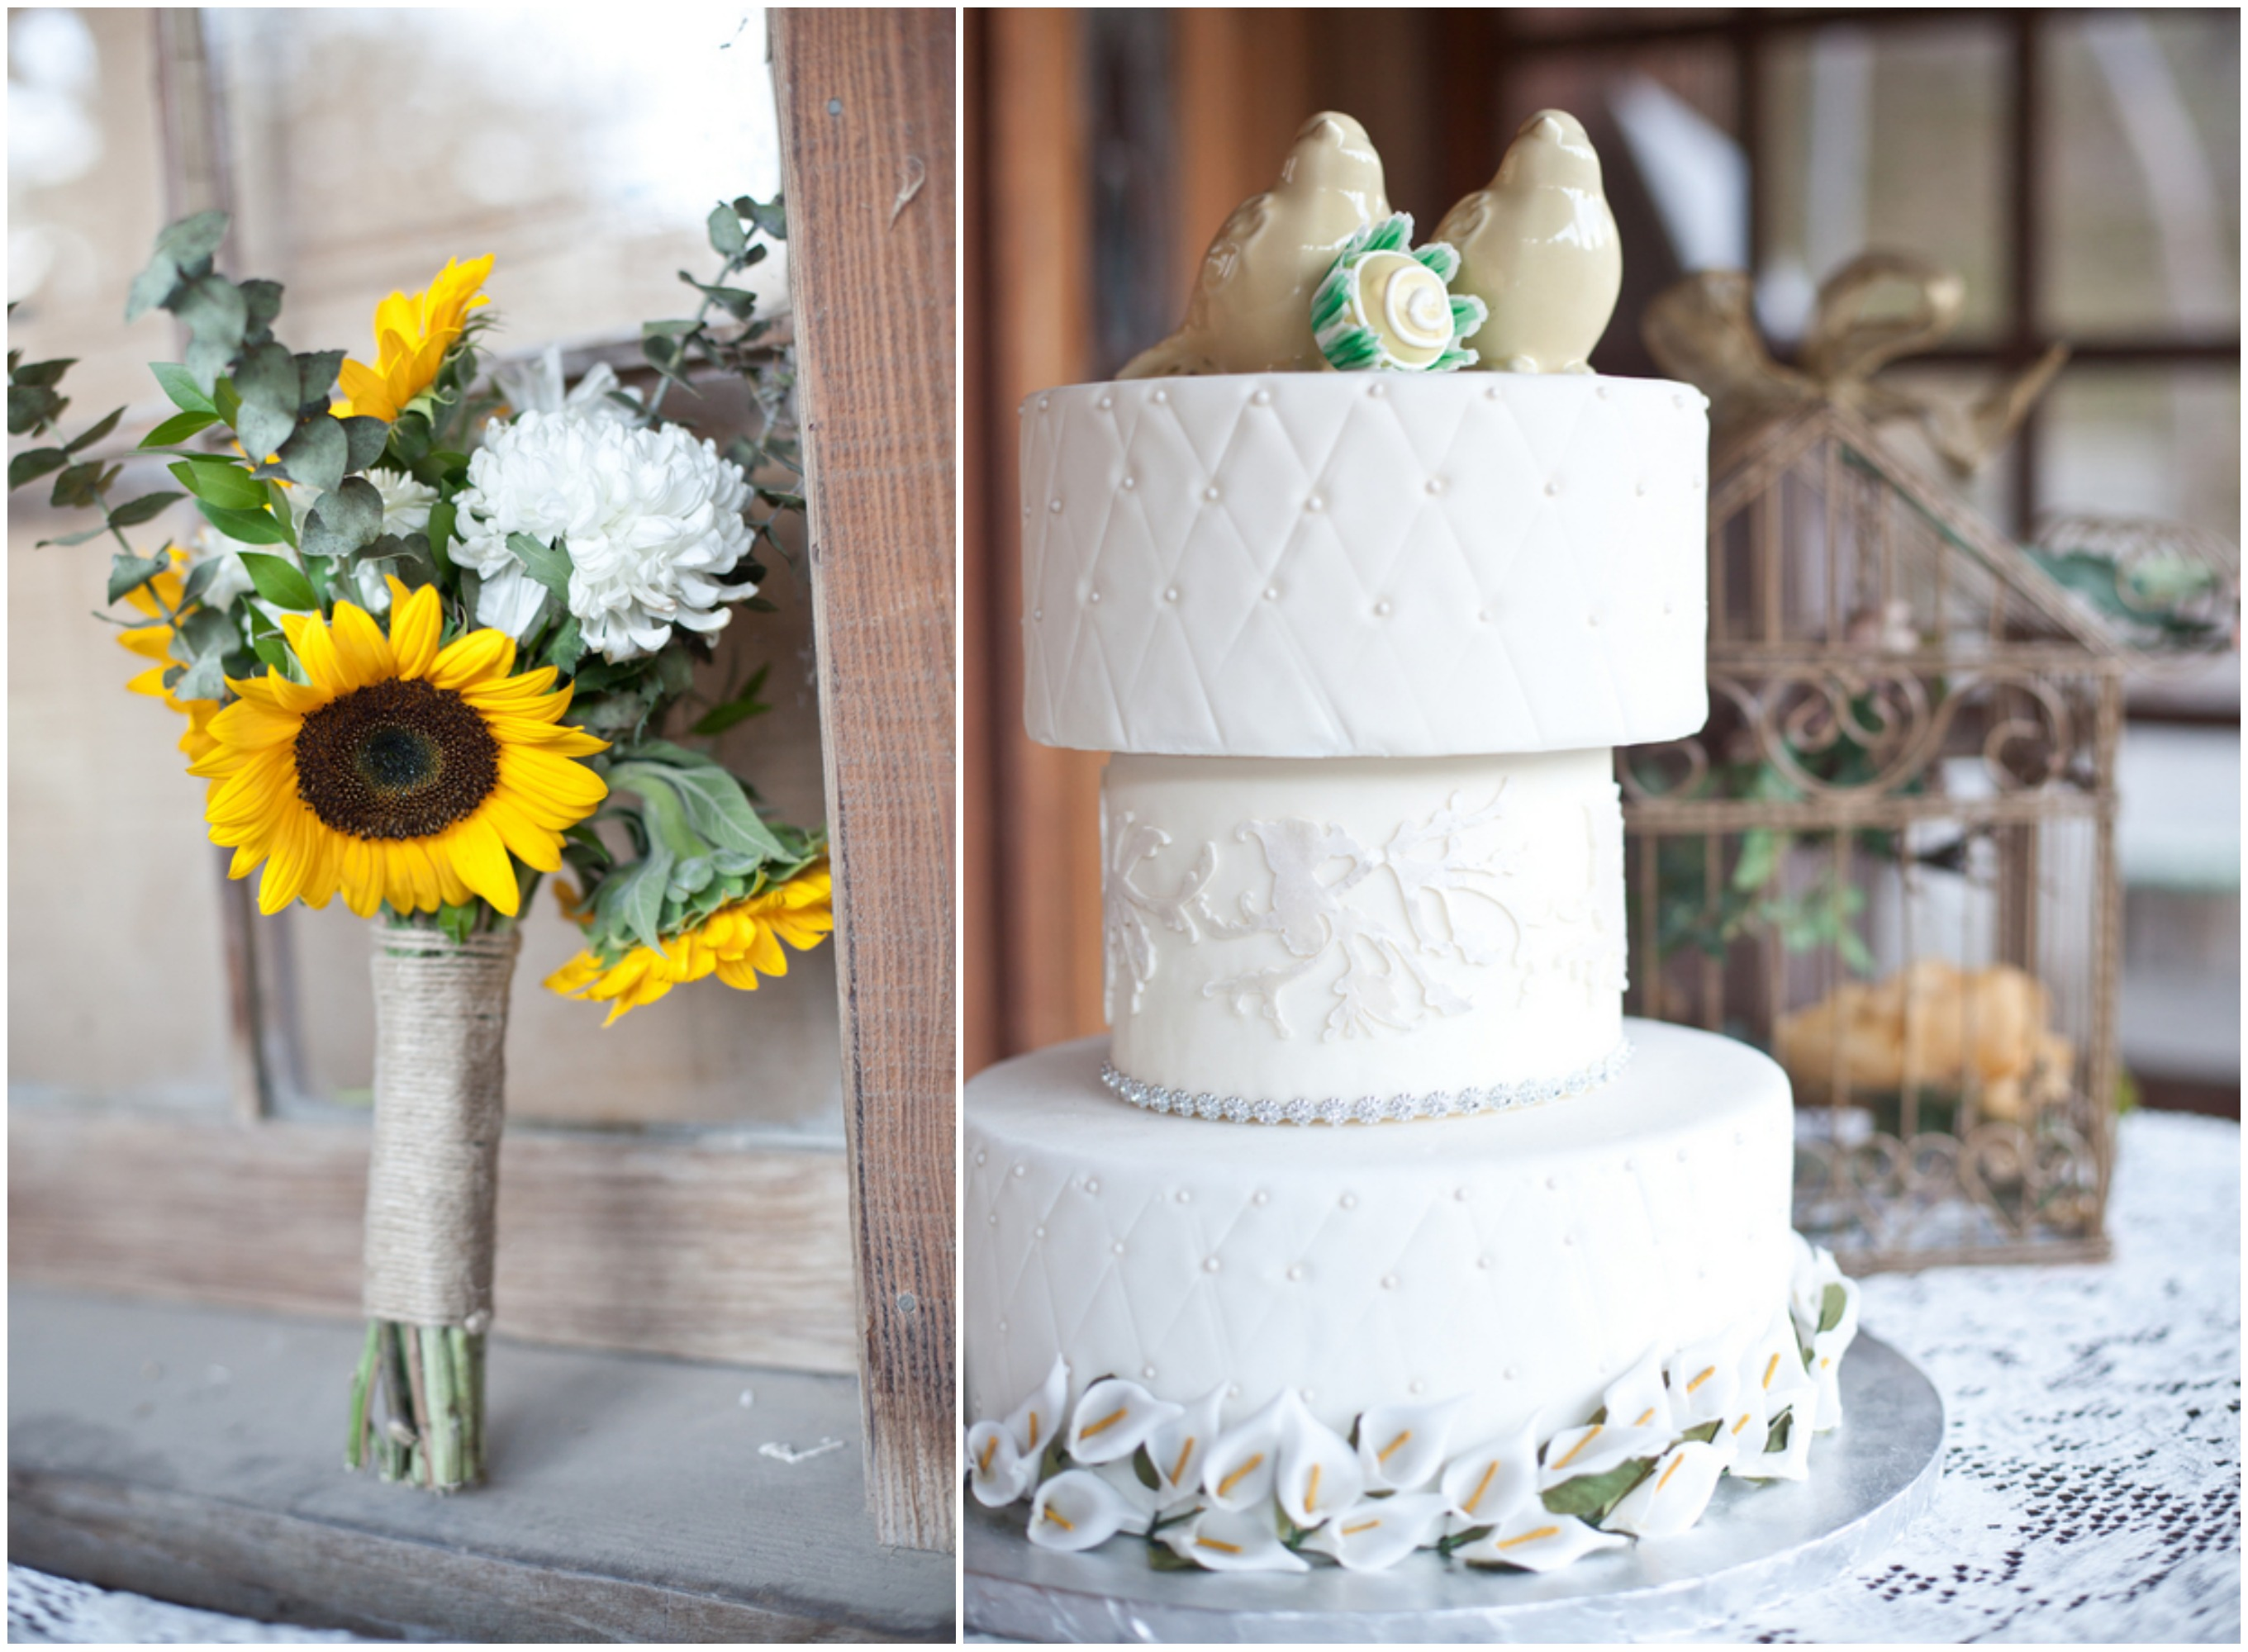 Inspiration For A Sunflower Country Wedding Rustic